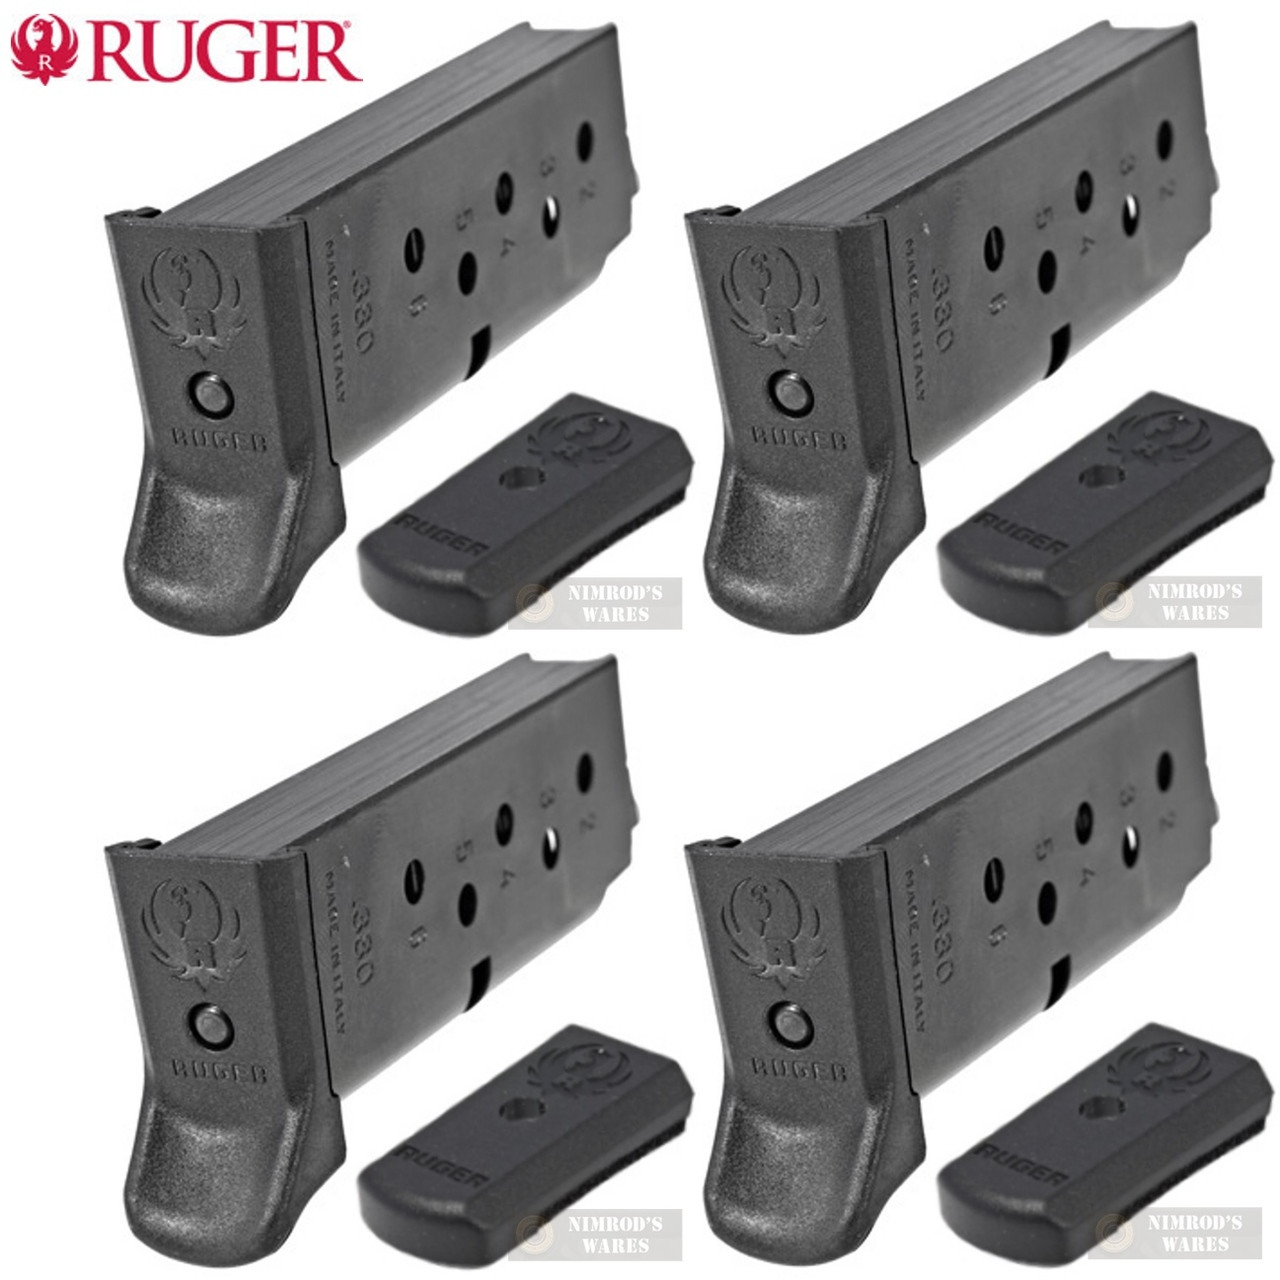 RUGER LCP II  380 ACP 6 Round MAGAZINE 4-PACK 90621